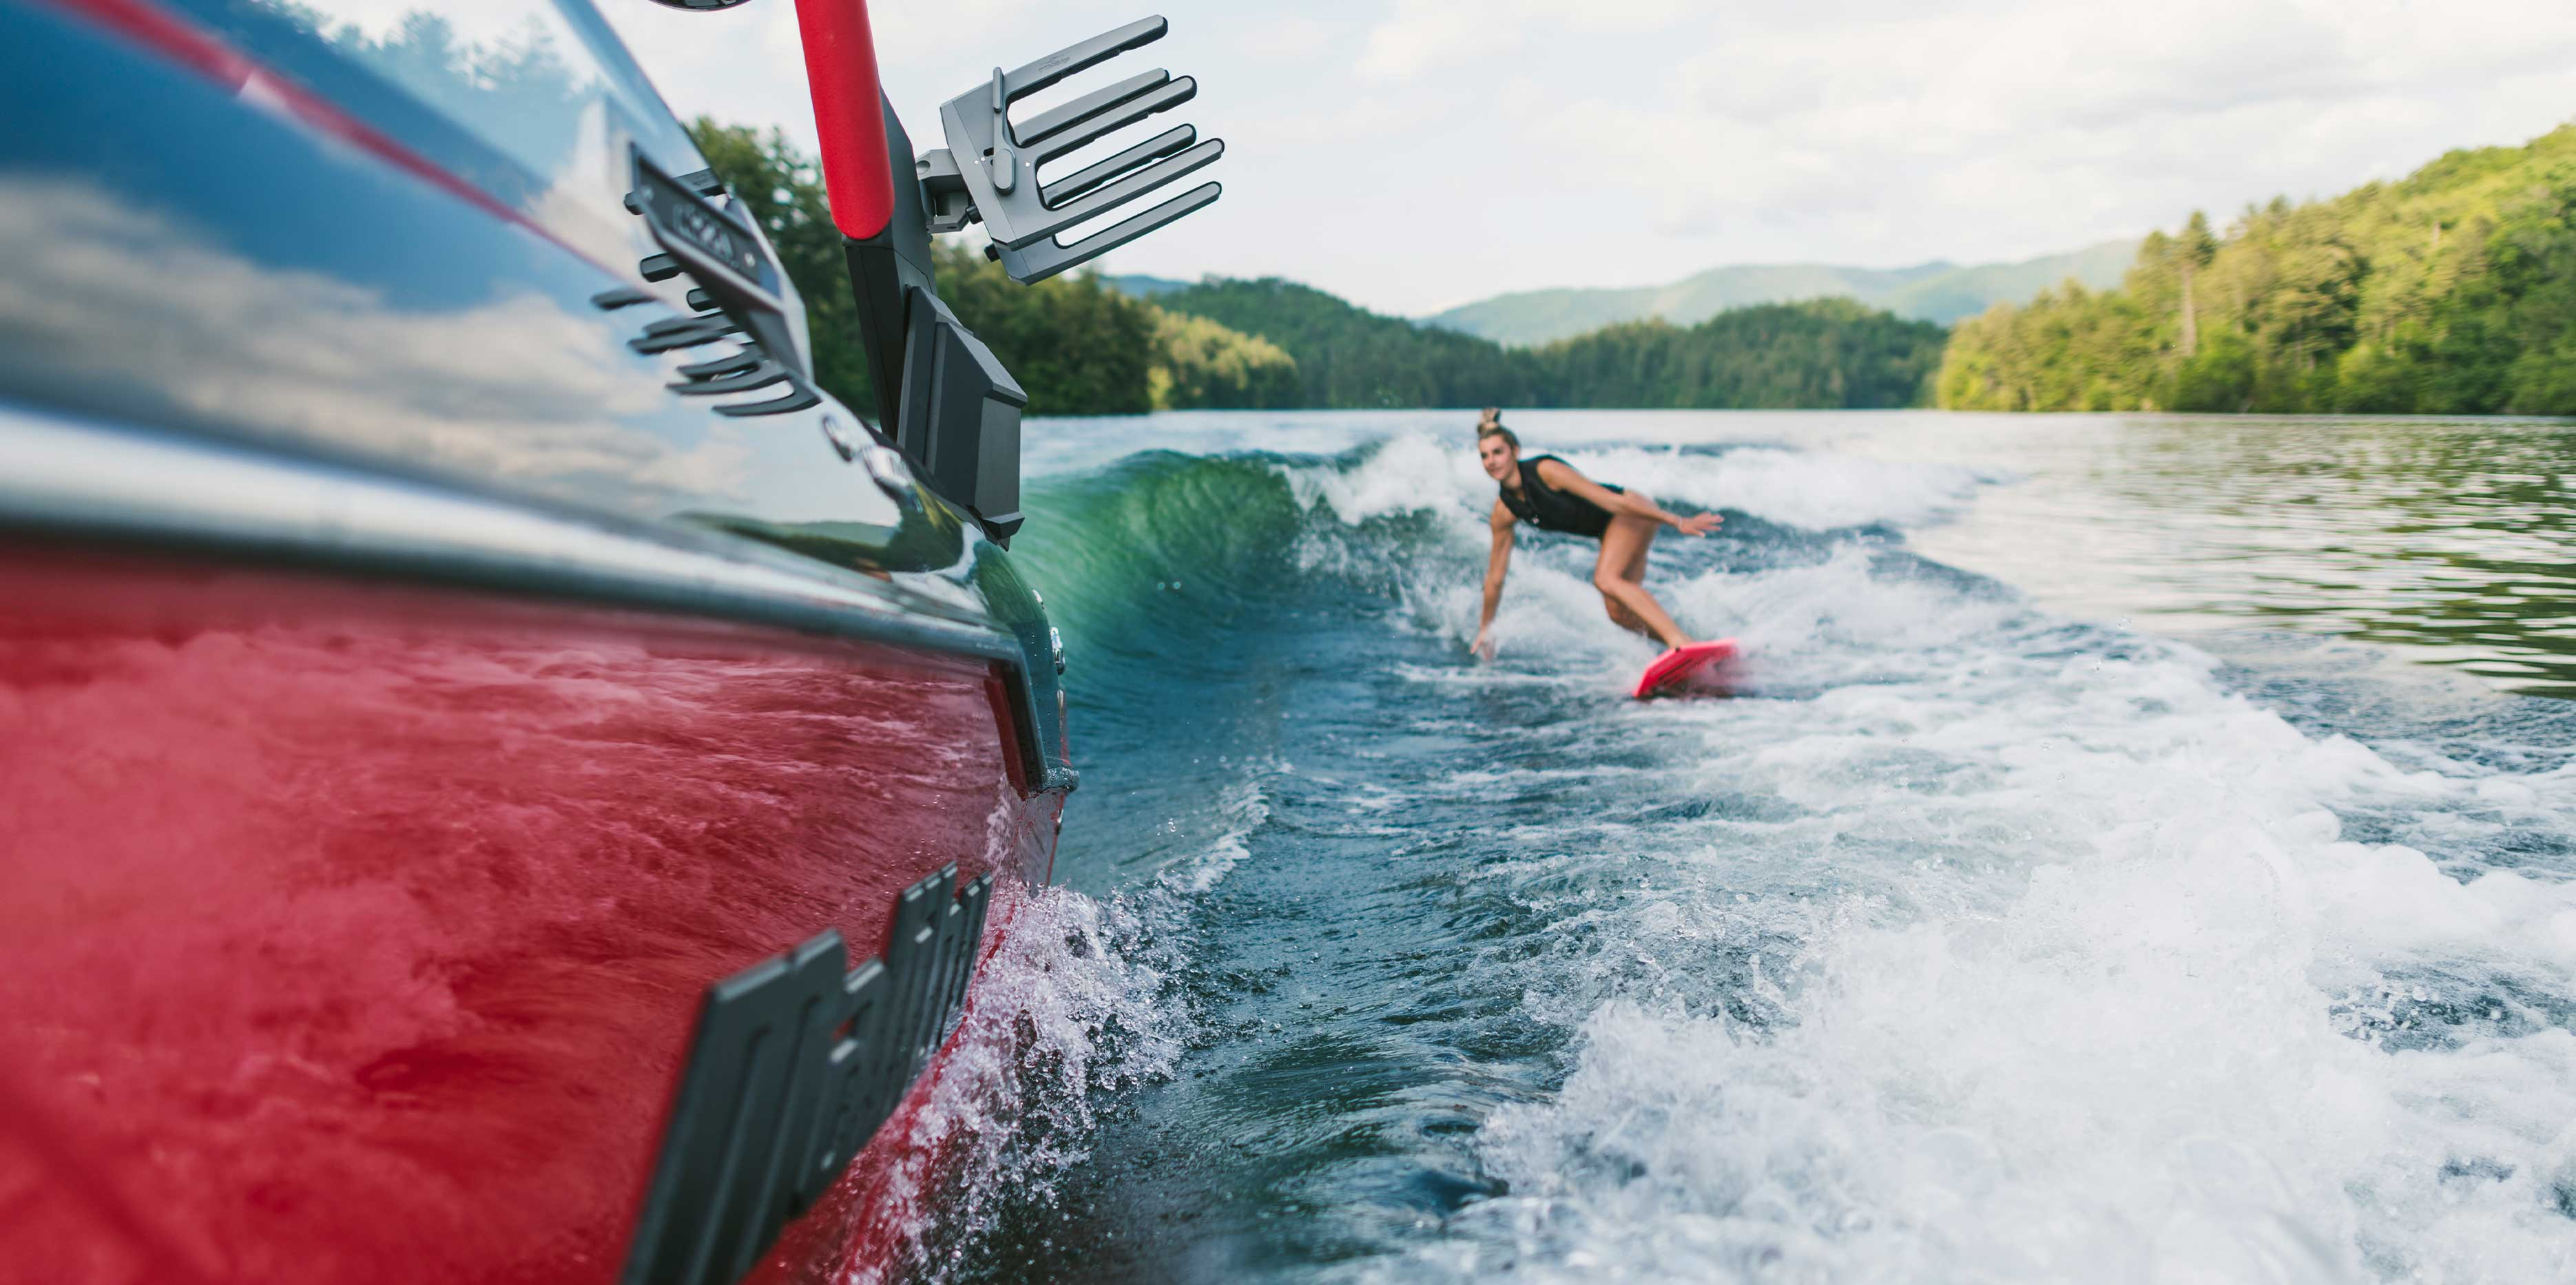 The 2021 Malibu Boats All-New M220 Wakesurfing